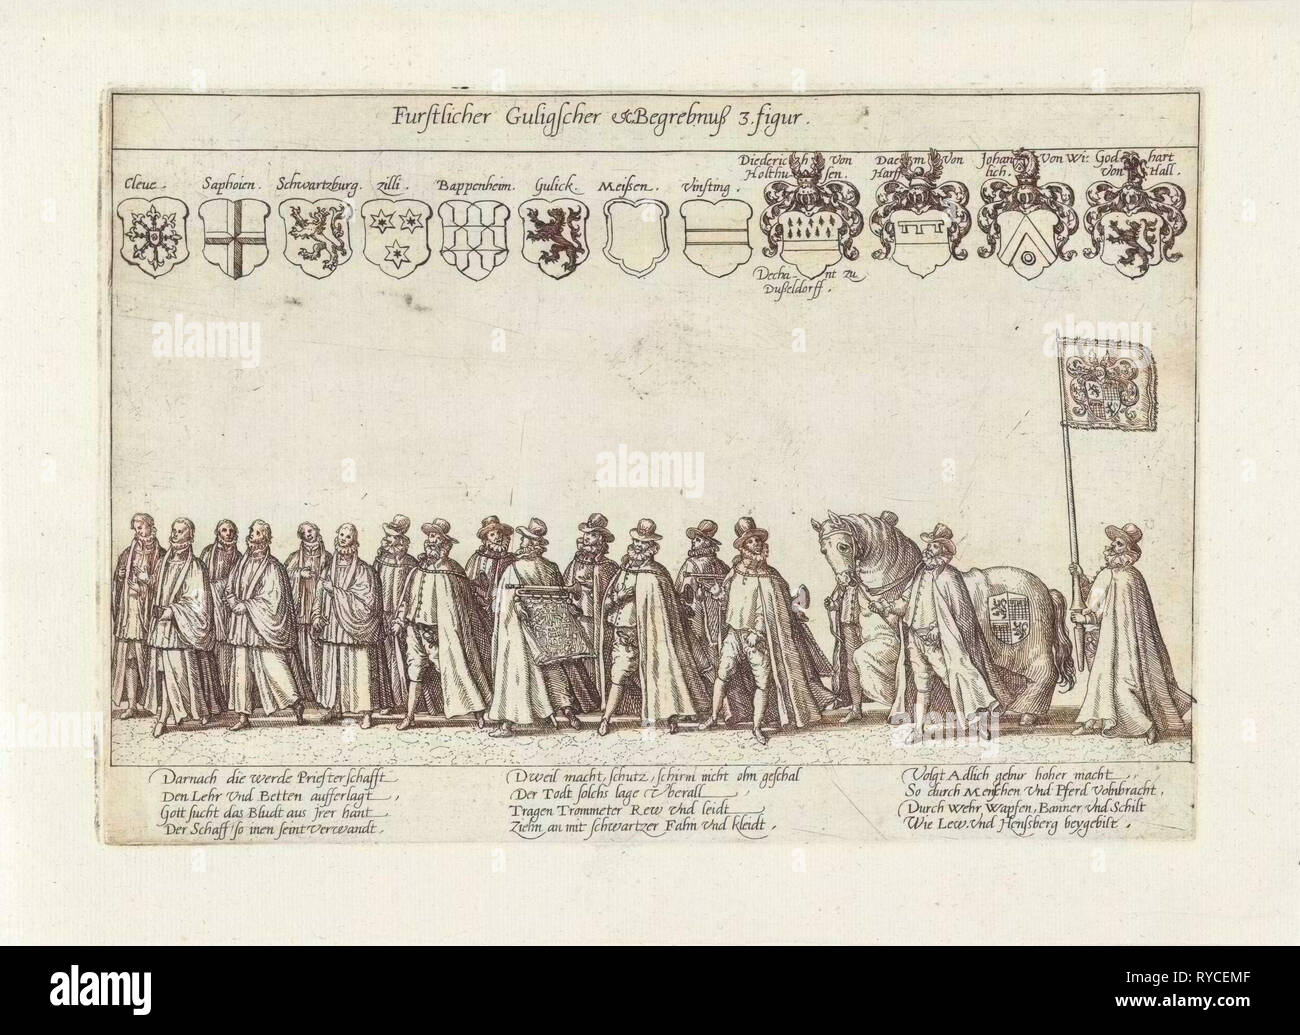 Funeral procession with scholars and nobles, Anonymous, 1592 - Stock Image